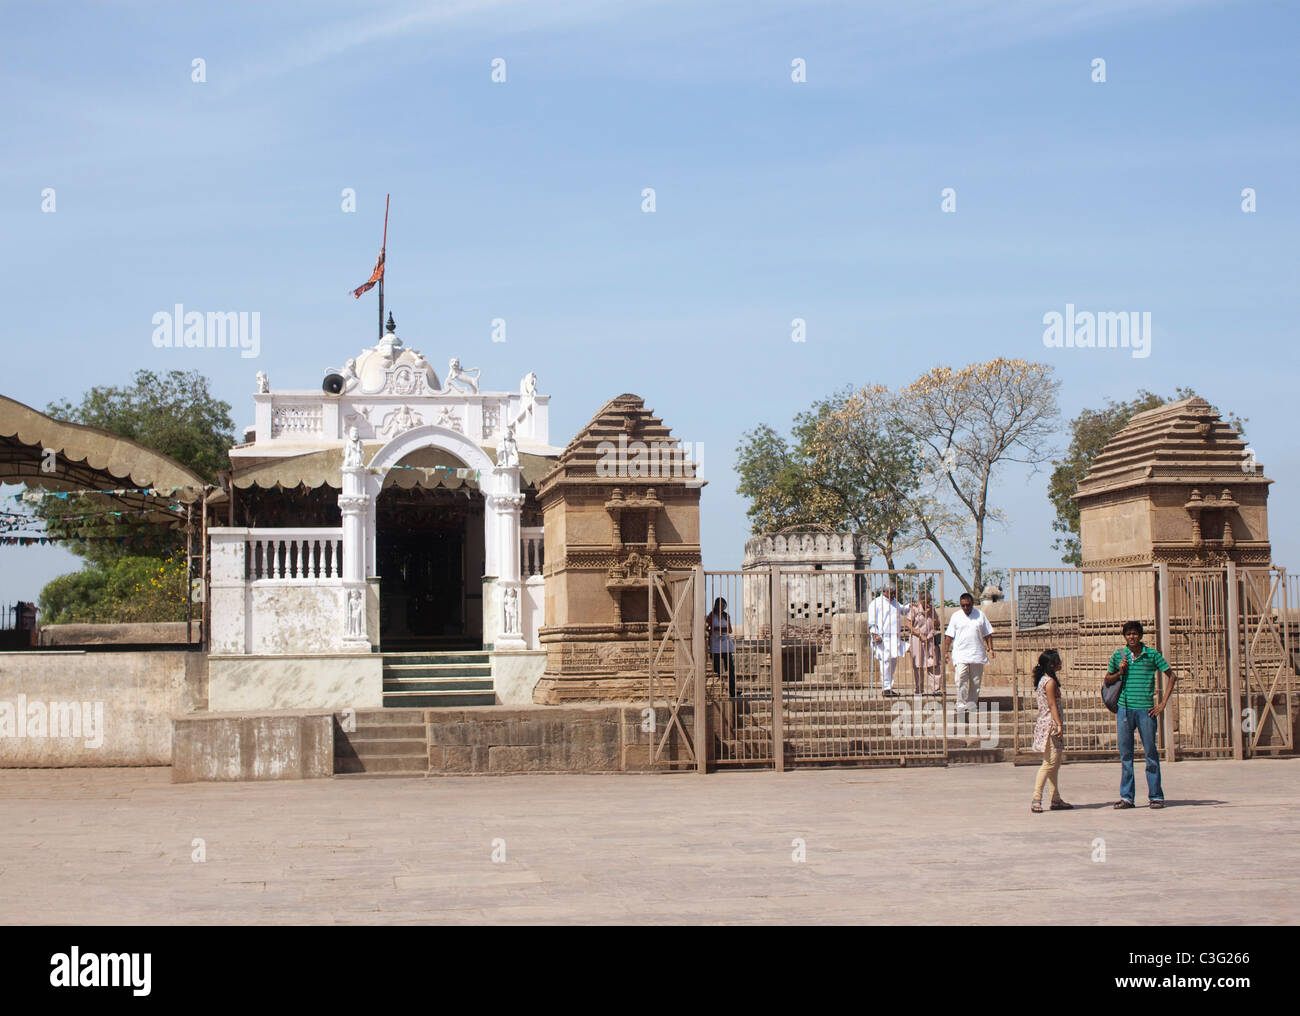 Group of people at a temple, Ahmedabad, Gujarat, India - Stock Image